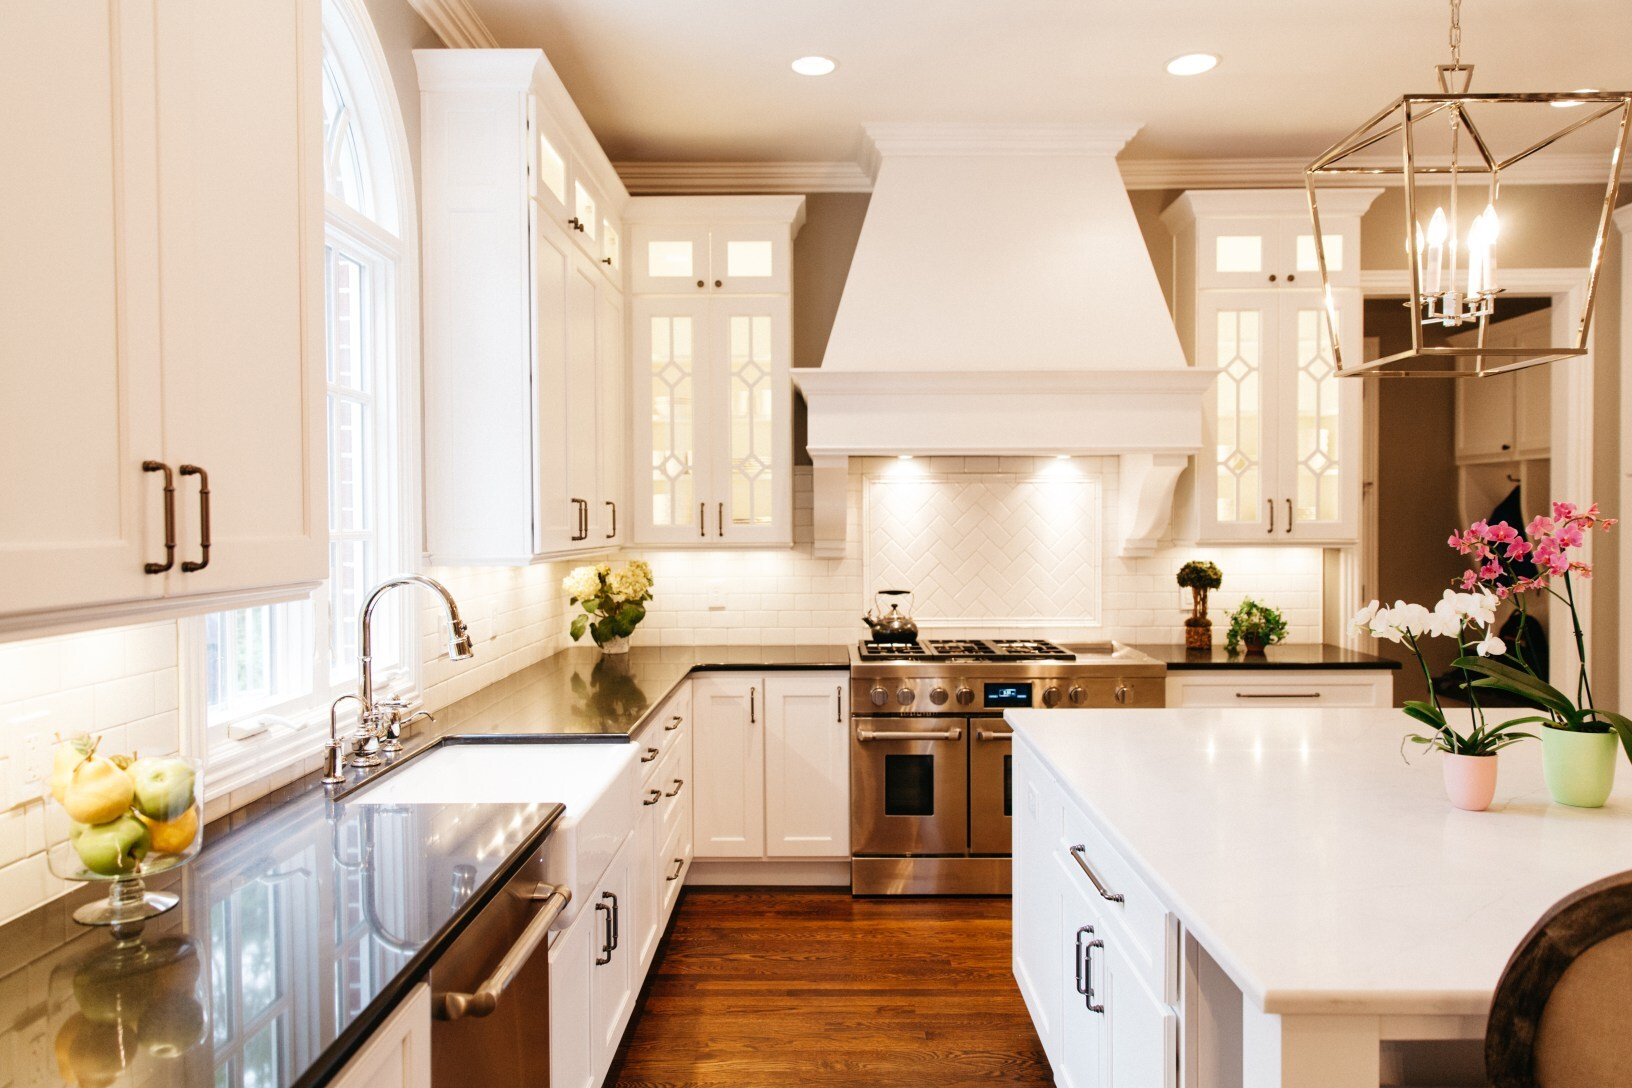 offers cost for new kitchen cabinets and granite countertops